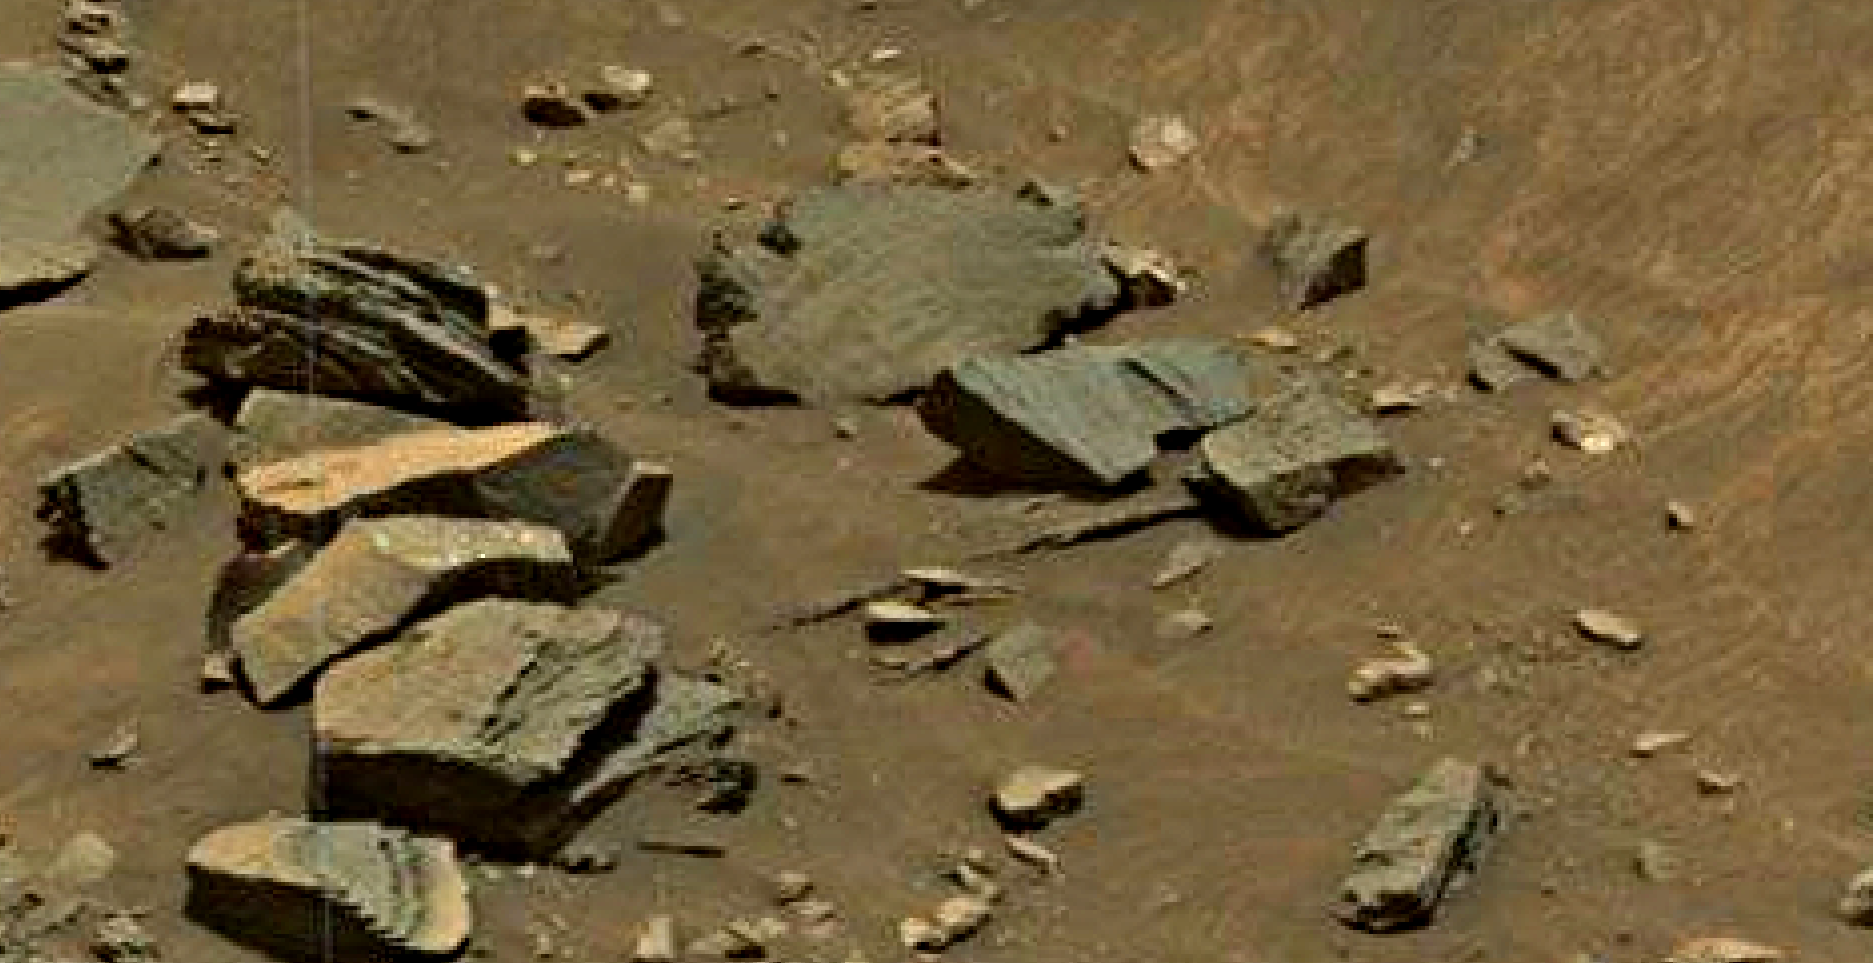 mars-sol-1455-anomaly-artifacts-4-was-life-on-mars